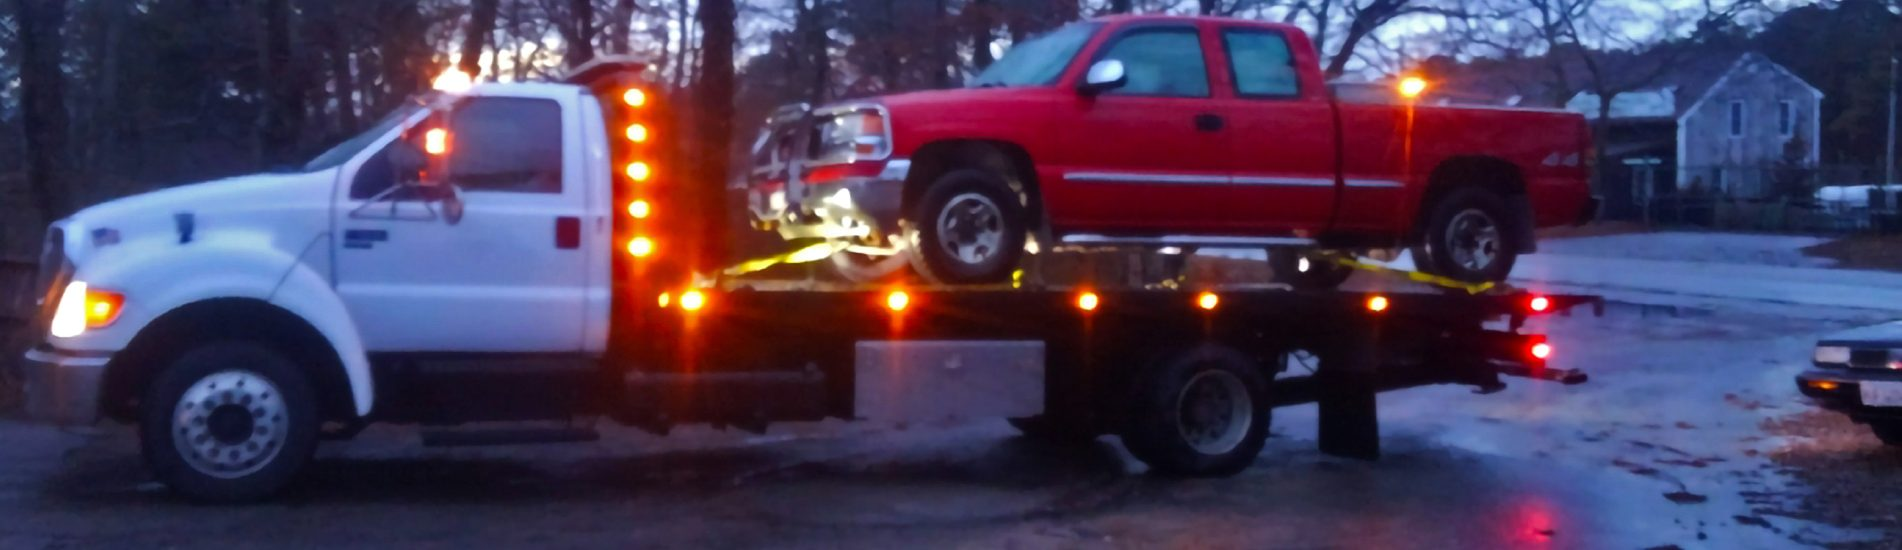 All Cape Truck Service in Harwich, MA provides towing services on Cape Cod